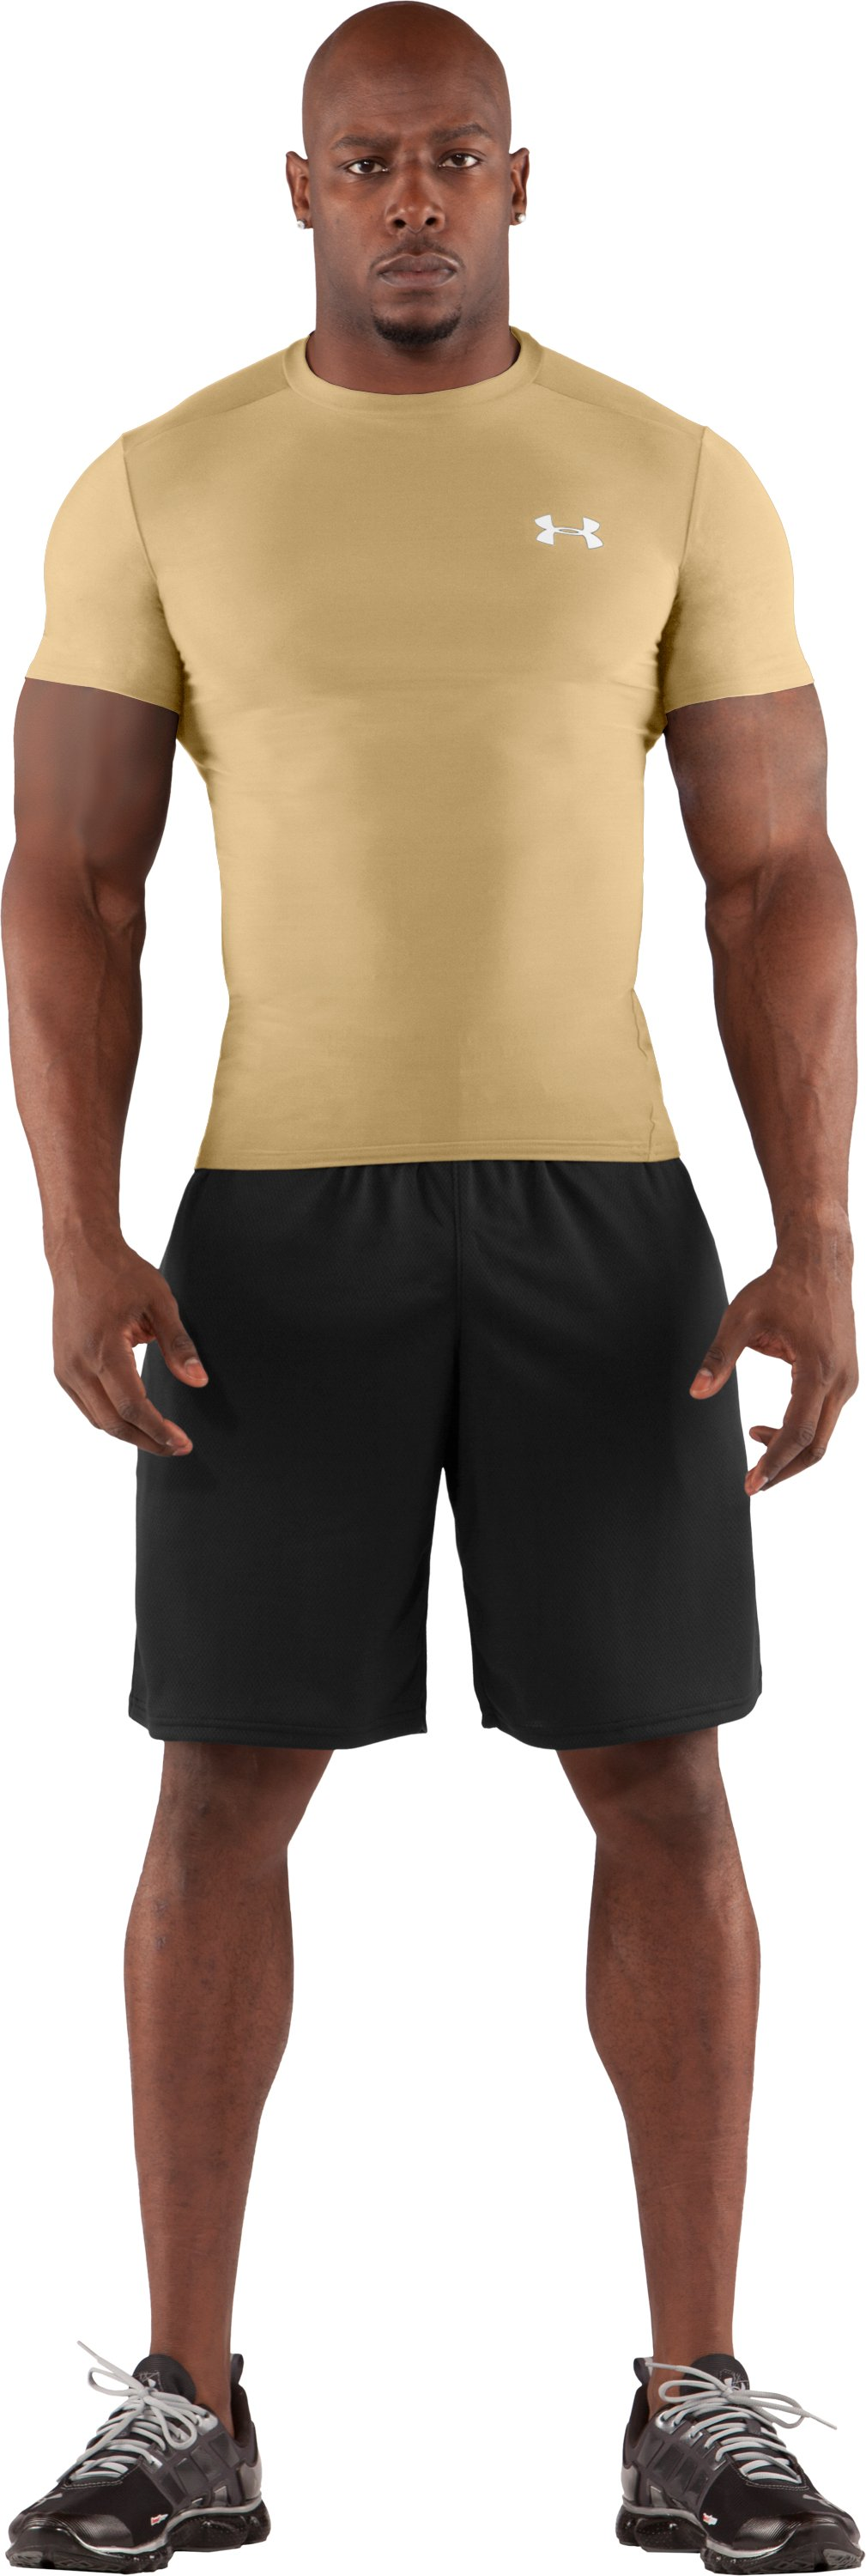 Men's HeatGear® Compression Short Sleeve T-Shirt, Vegas Gold